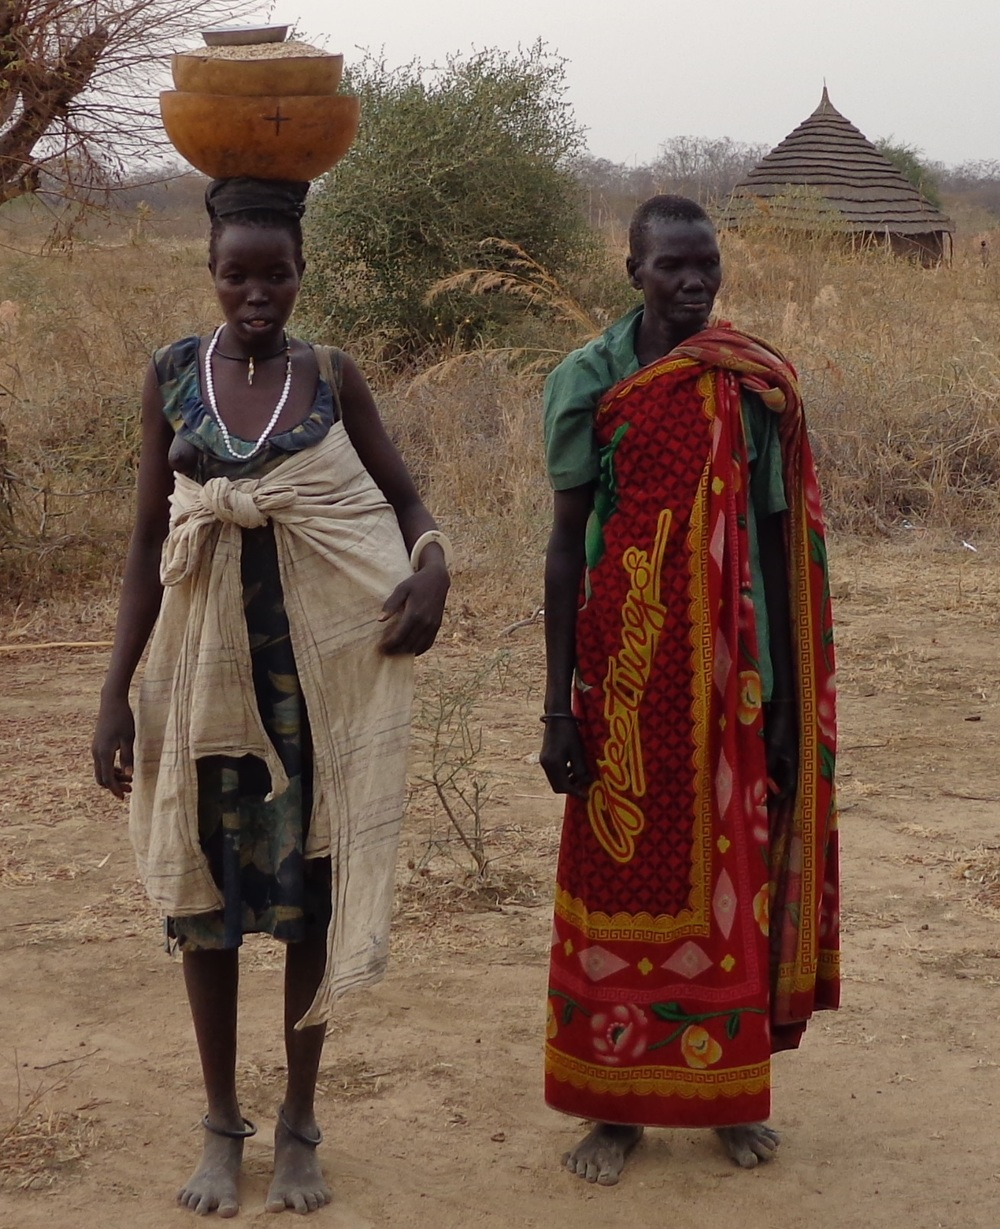 Women walking for water in south sudan